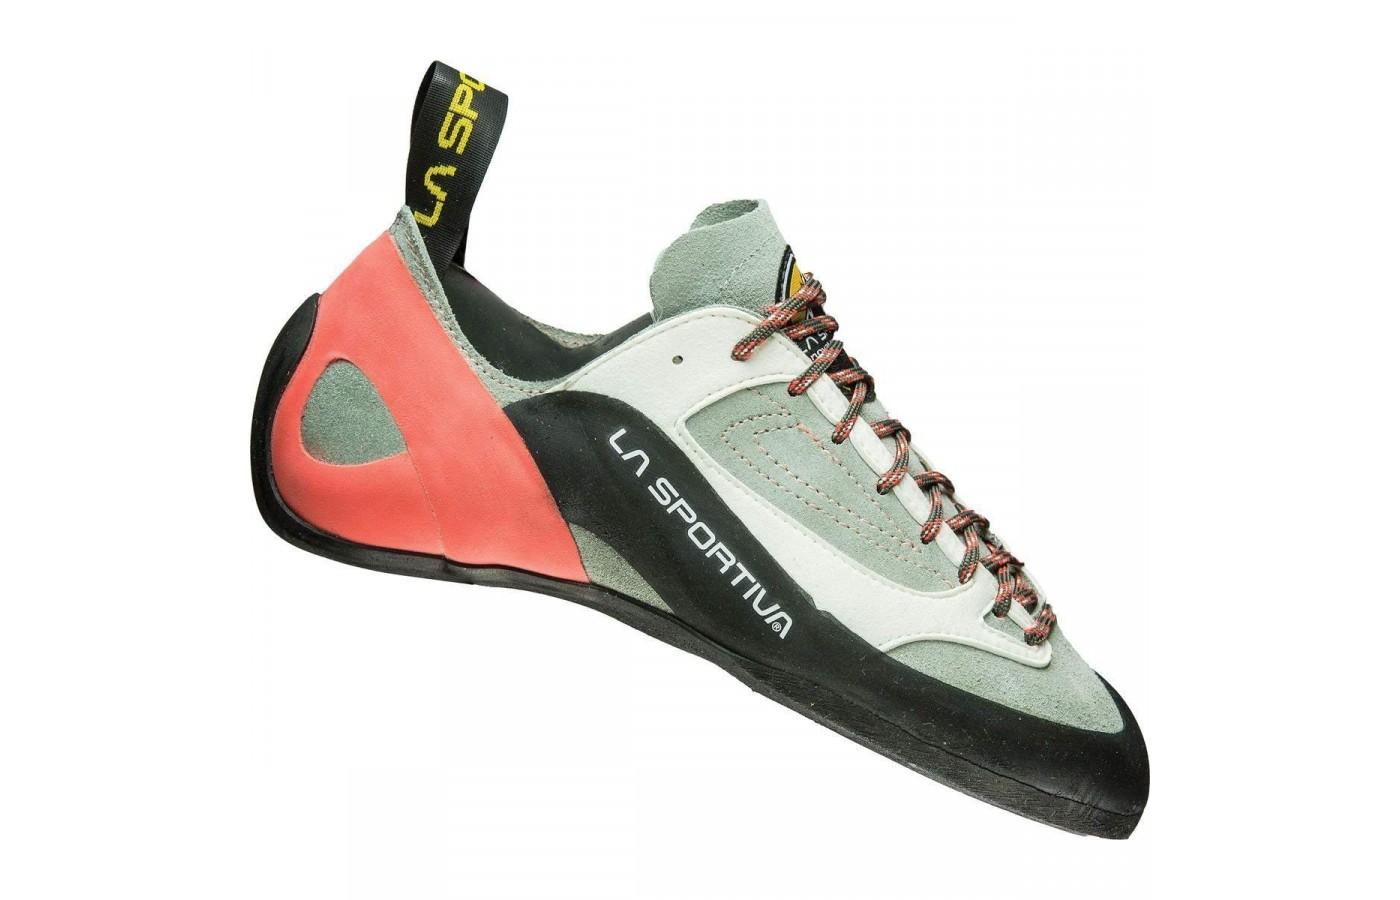 The Finale totes some of the best La Sportiva features.